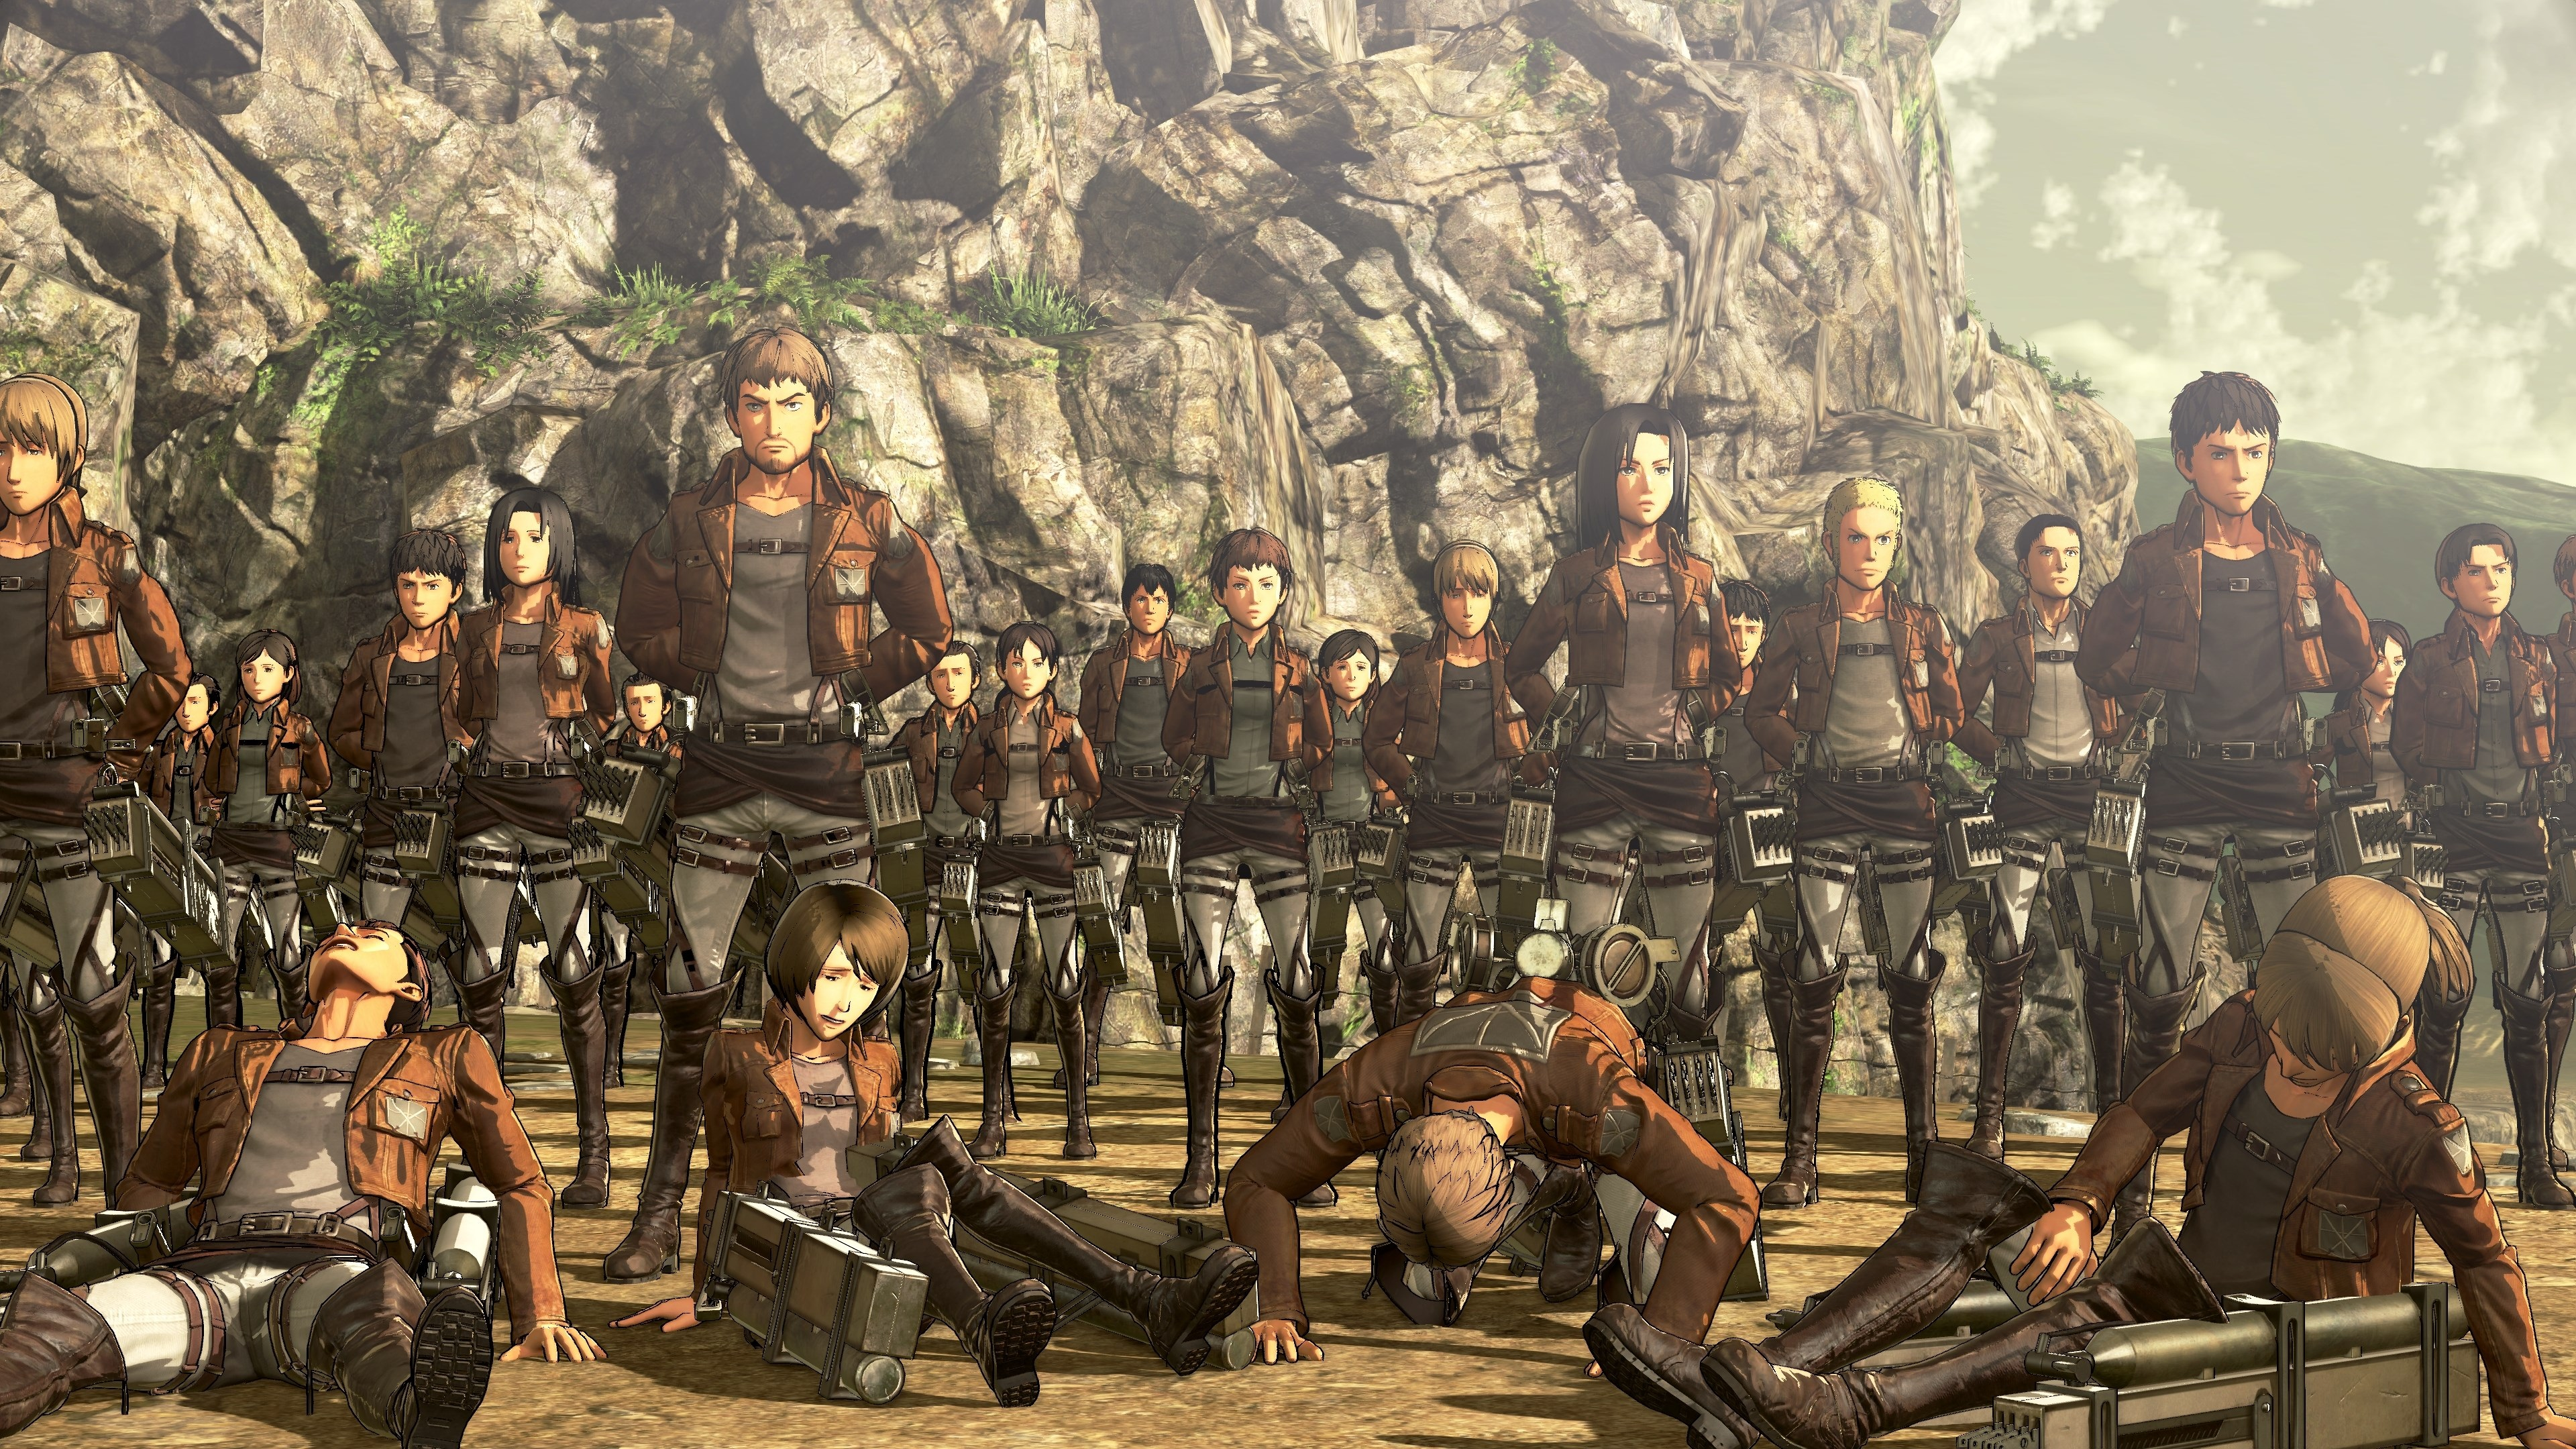 Aot 104th Cadets 2232954 Hd Wallpaper Backgrounds Download